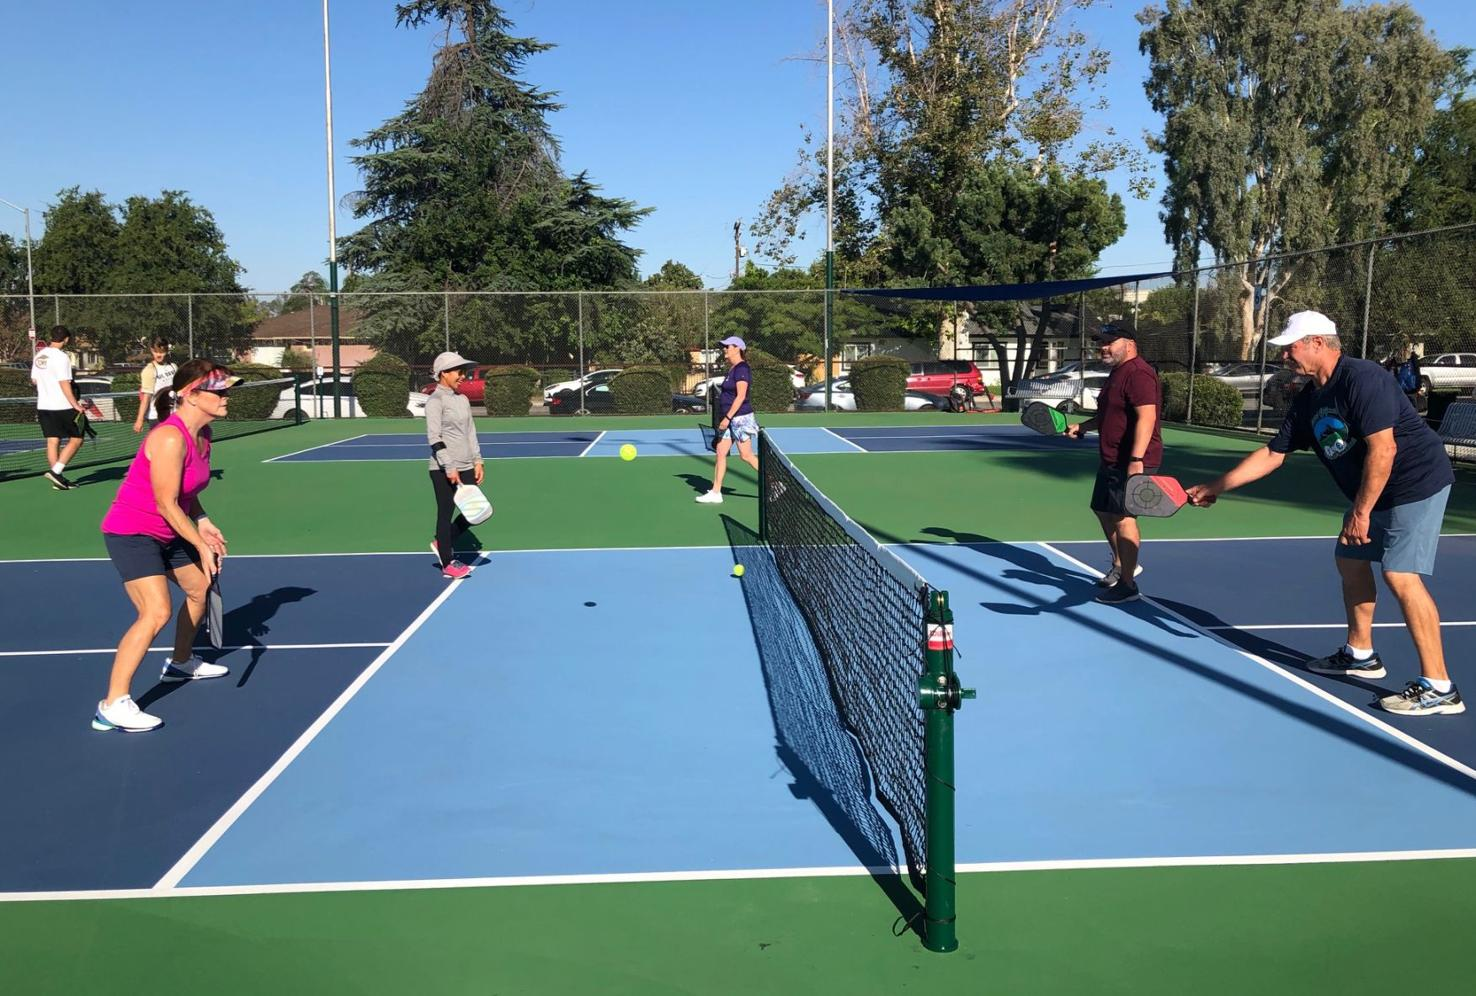 Bakersfield Pickleball and Music Festival coming to Jastro Park on Nov. 13